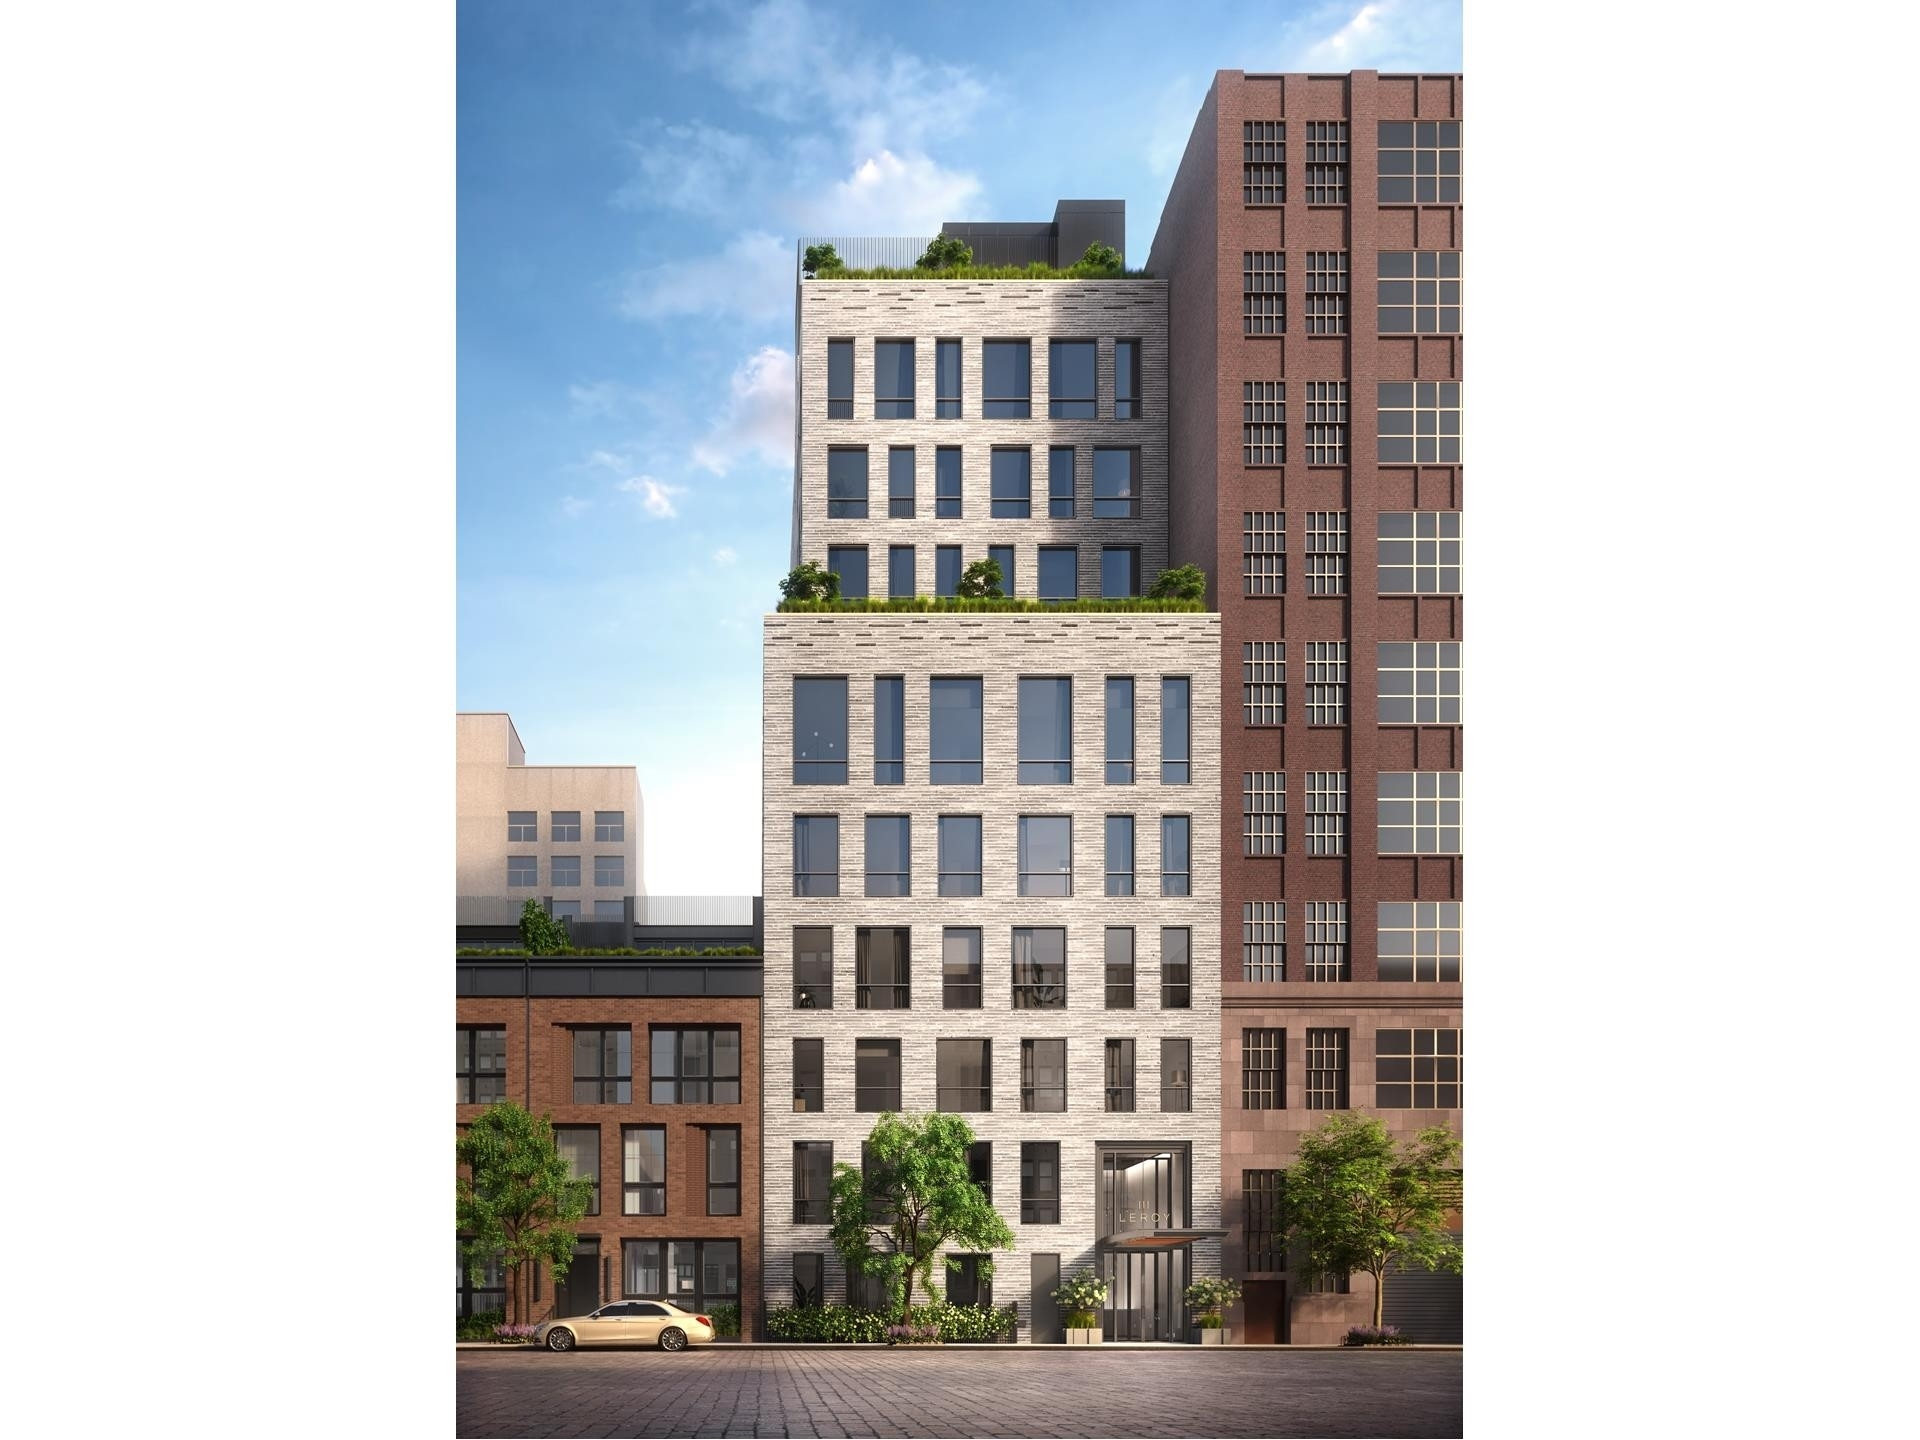 12. Condominiums for Sale at 111 Leroy St, 7 West Village, New York, NY 10014